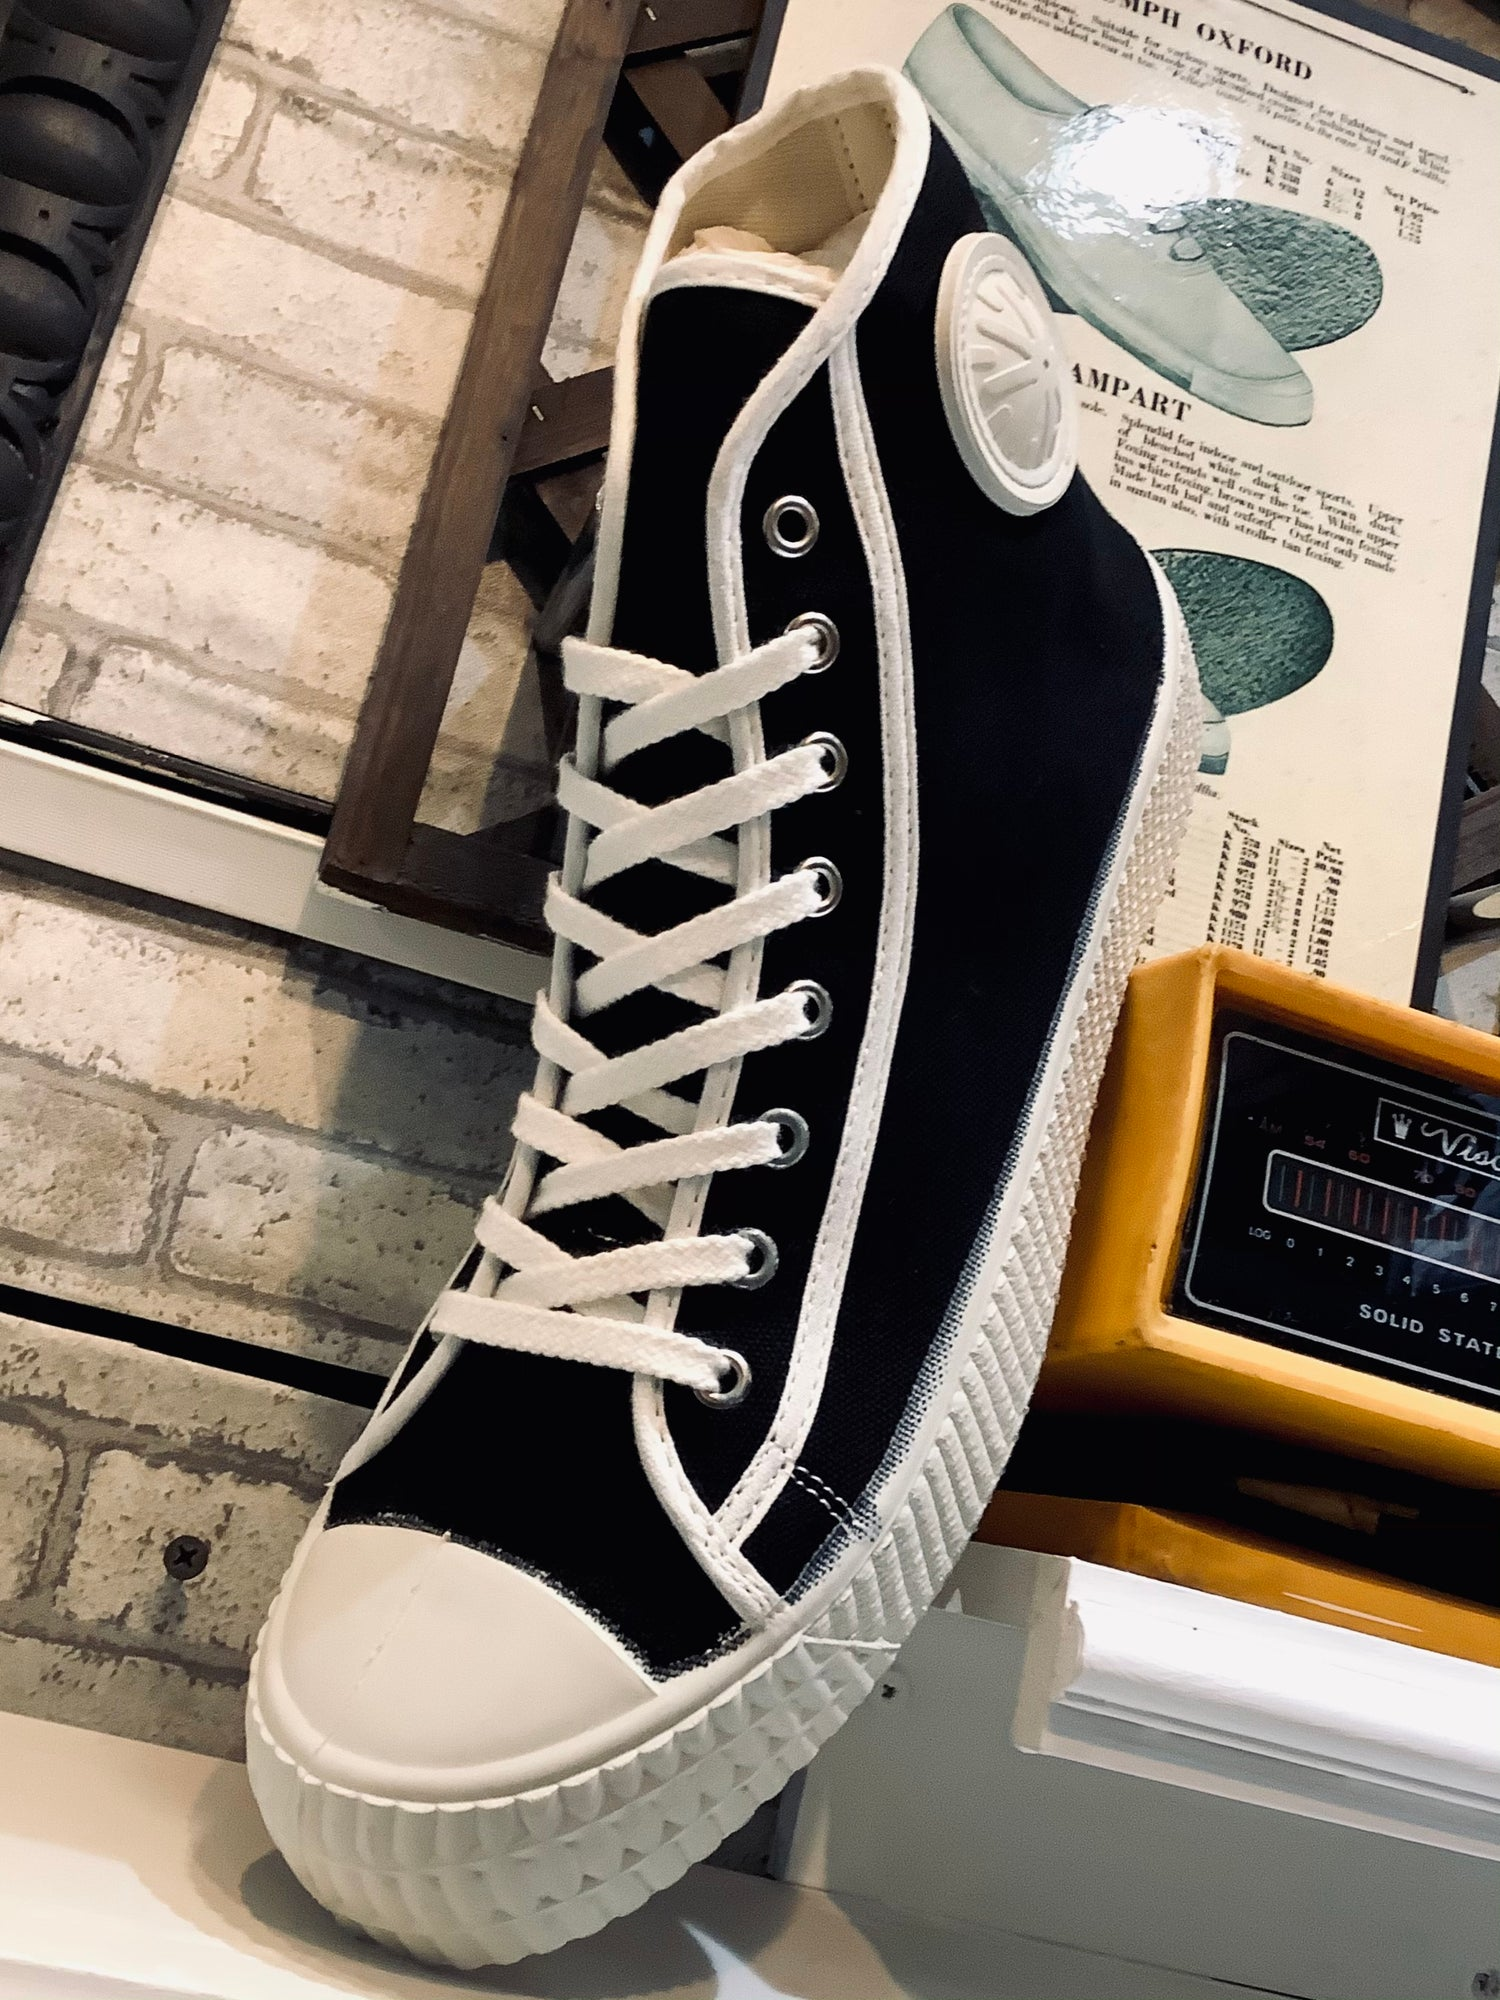 Image of ZDA military hi top black and white sneaker shoes made in Slovakia